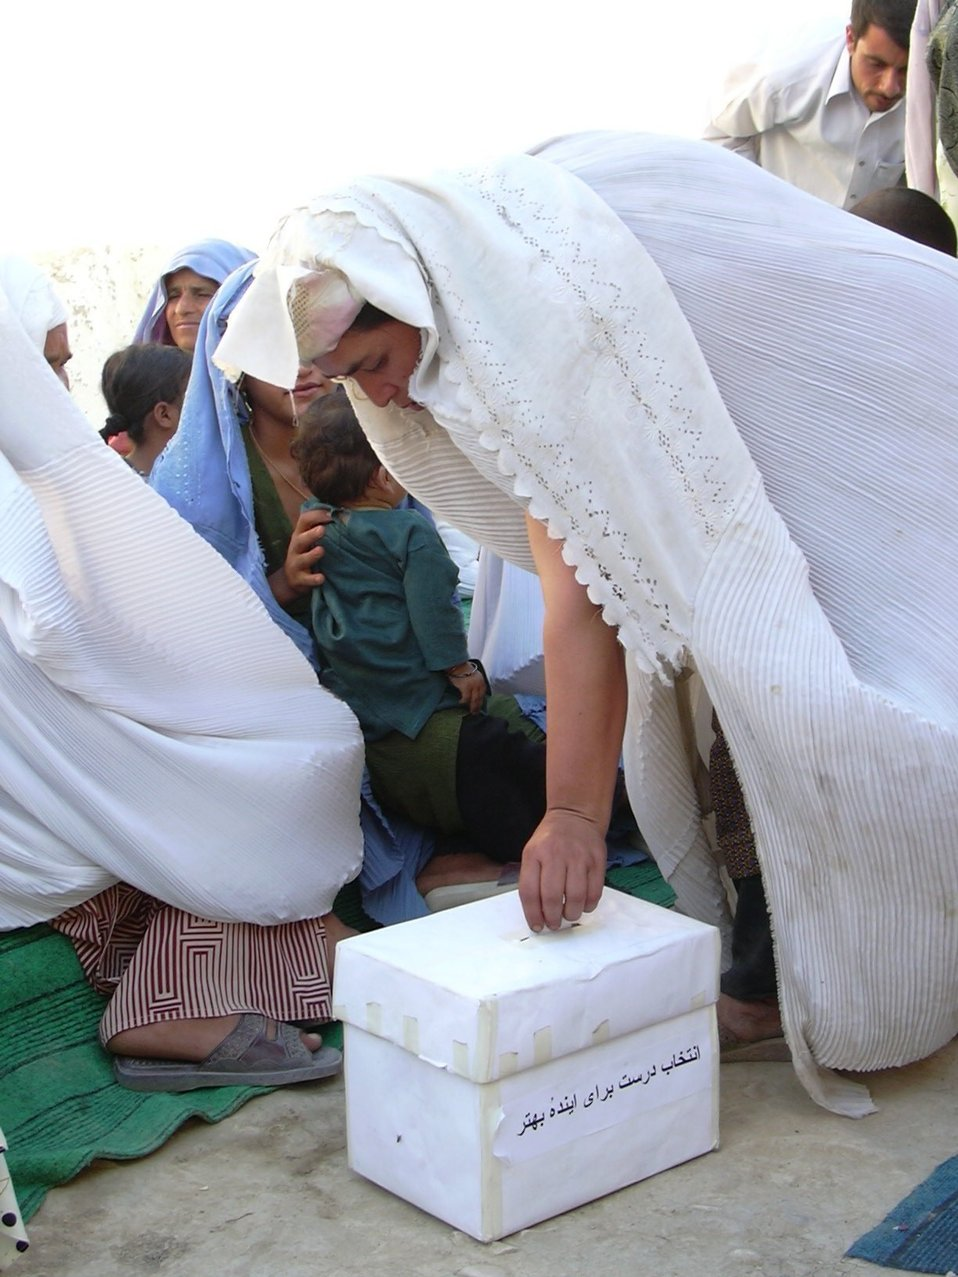 Pic09 Mazar women voting 2003